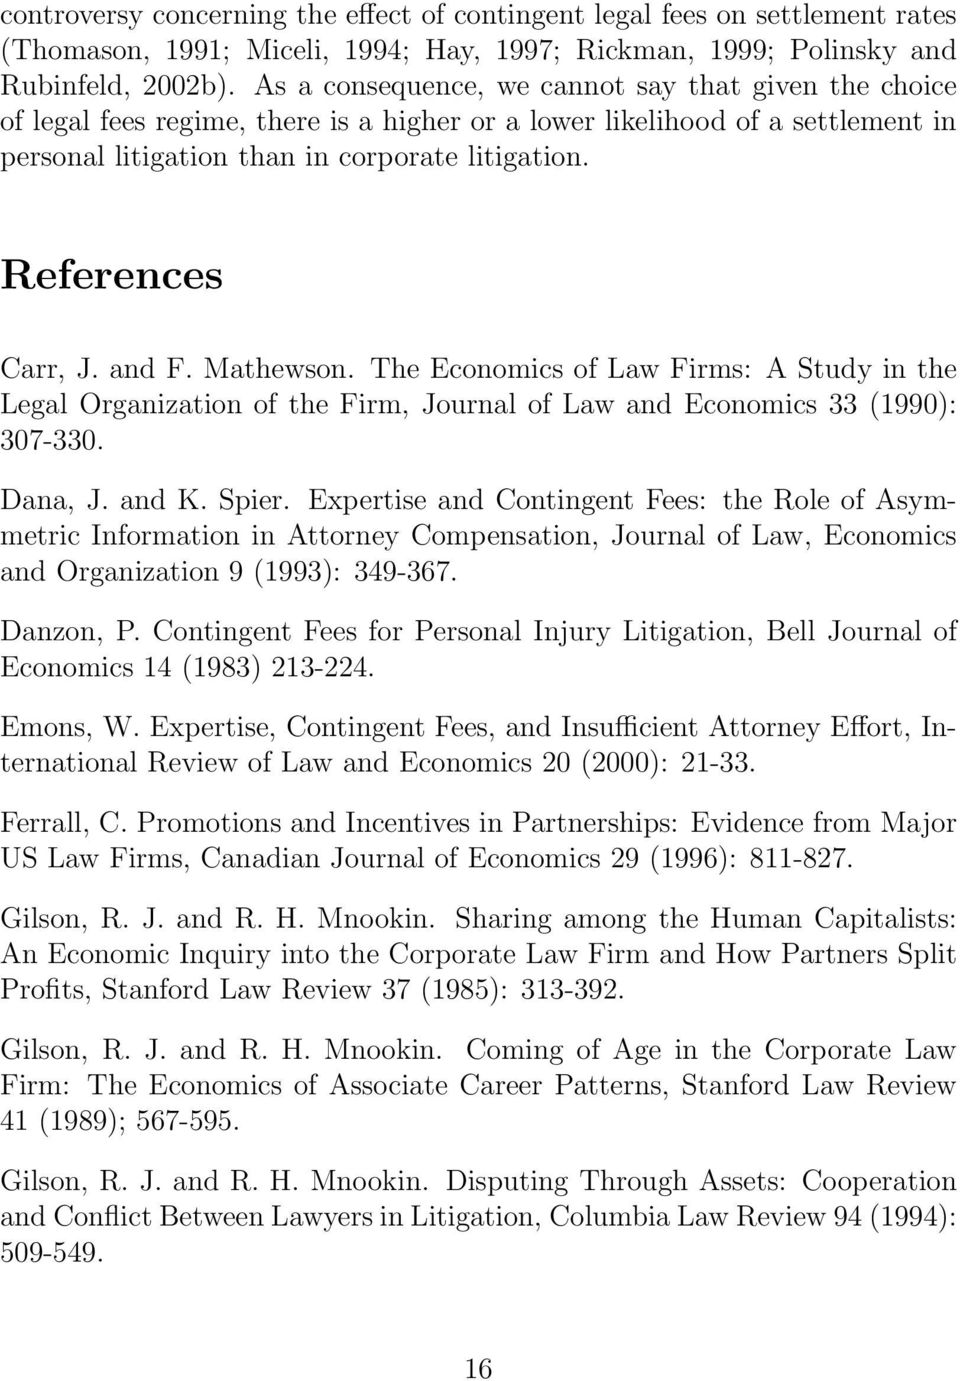 References Carr, J. and F. Mathewson. The Economics of Law Firms: A Study in the Legal Organization of the Firm, Journal of Law and Economics 33 (1990): 307-330. Dana, J. and K. Spier.